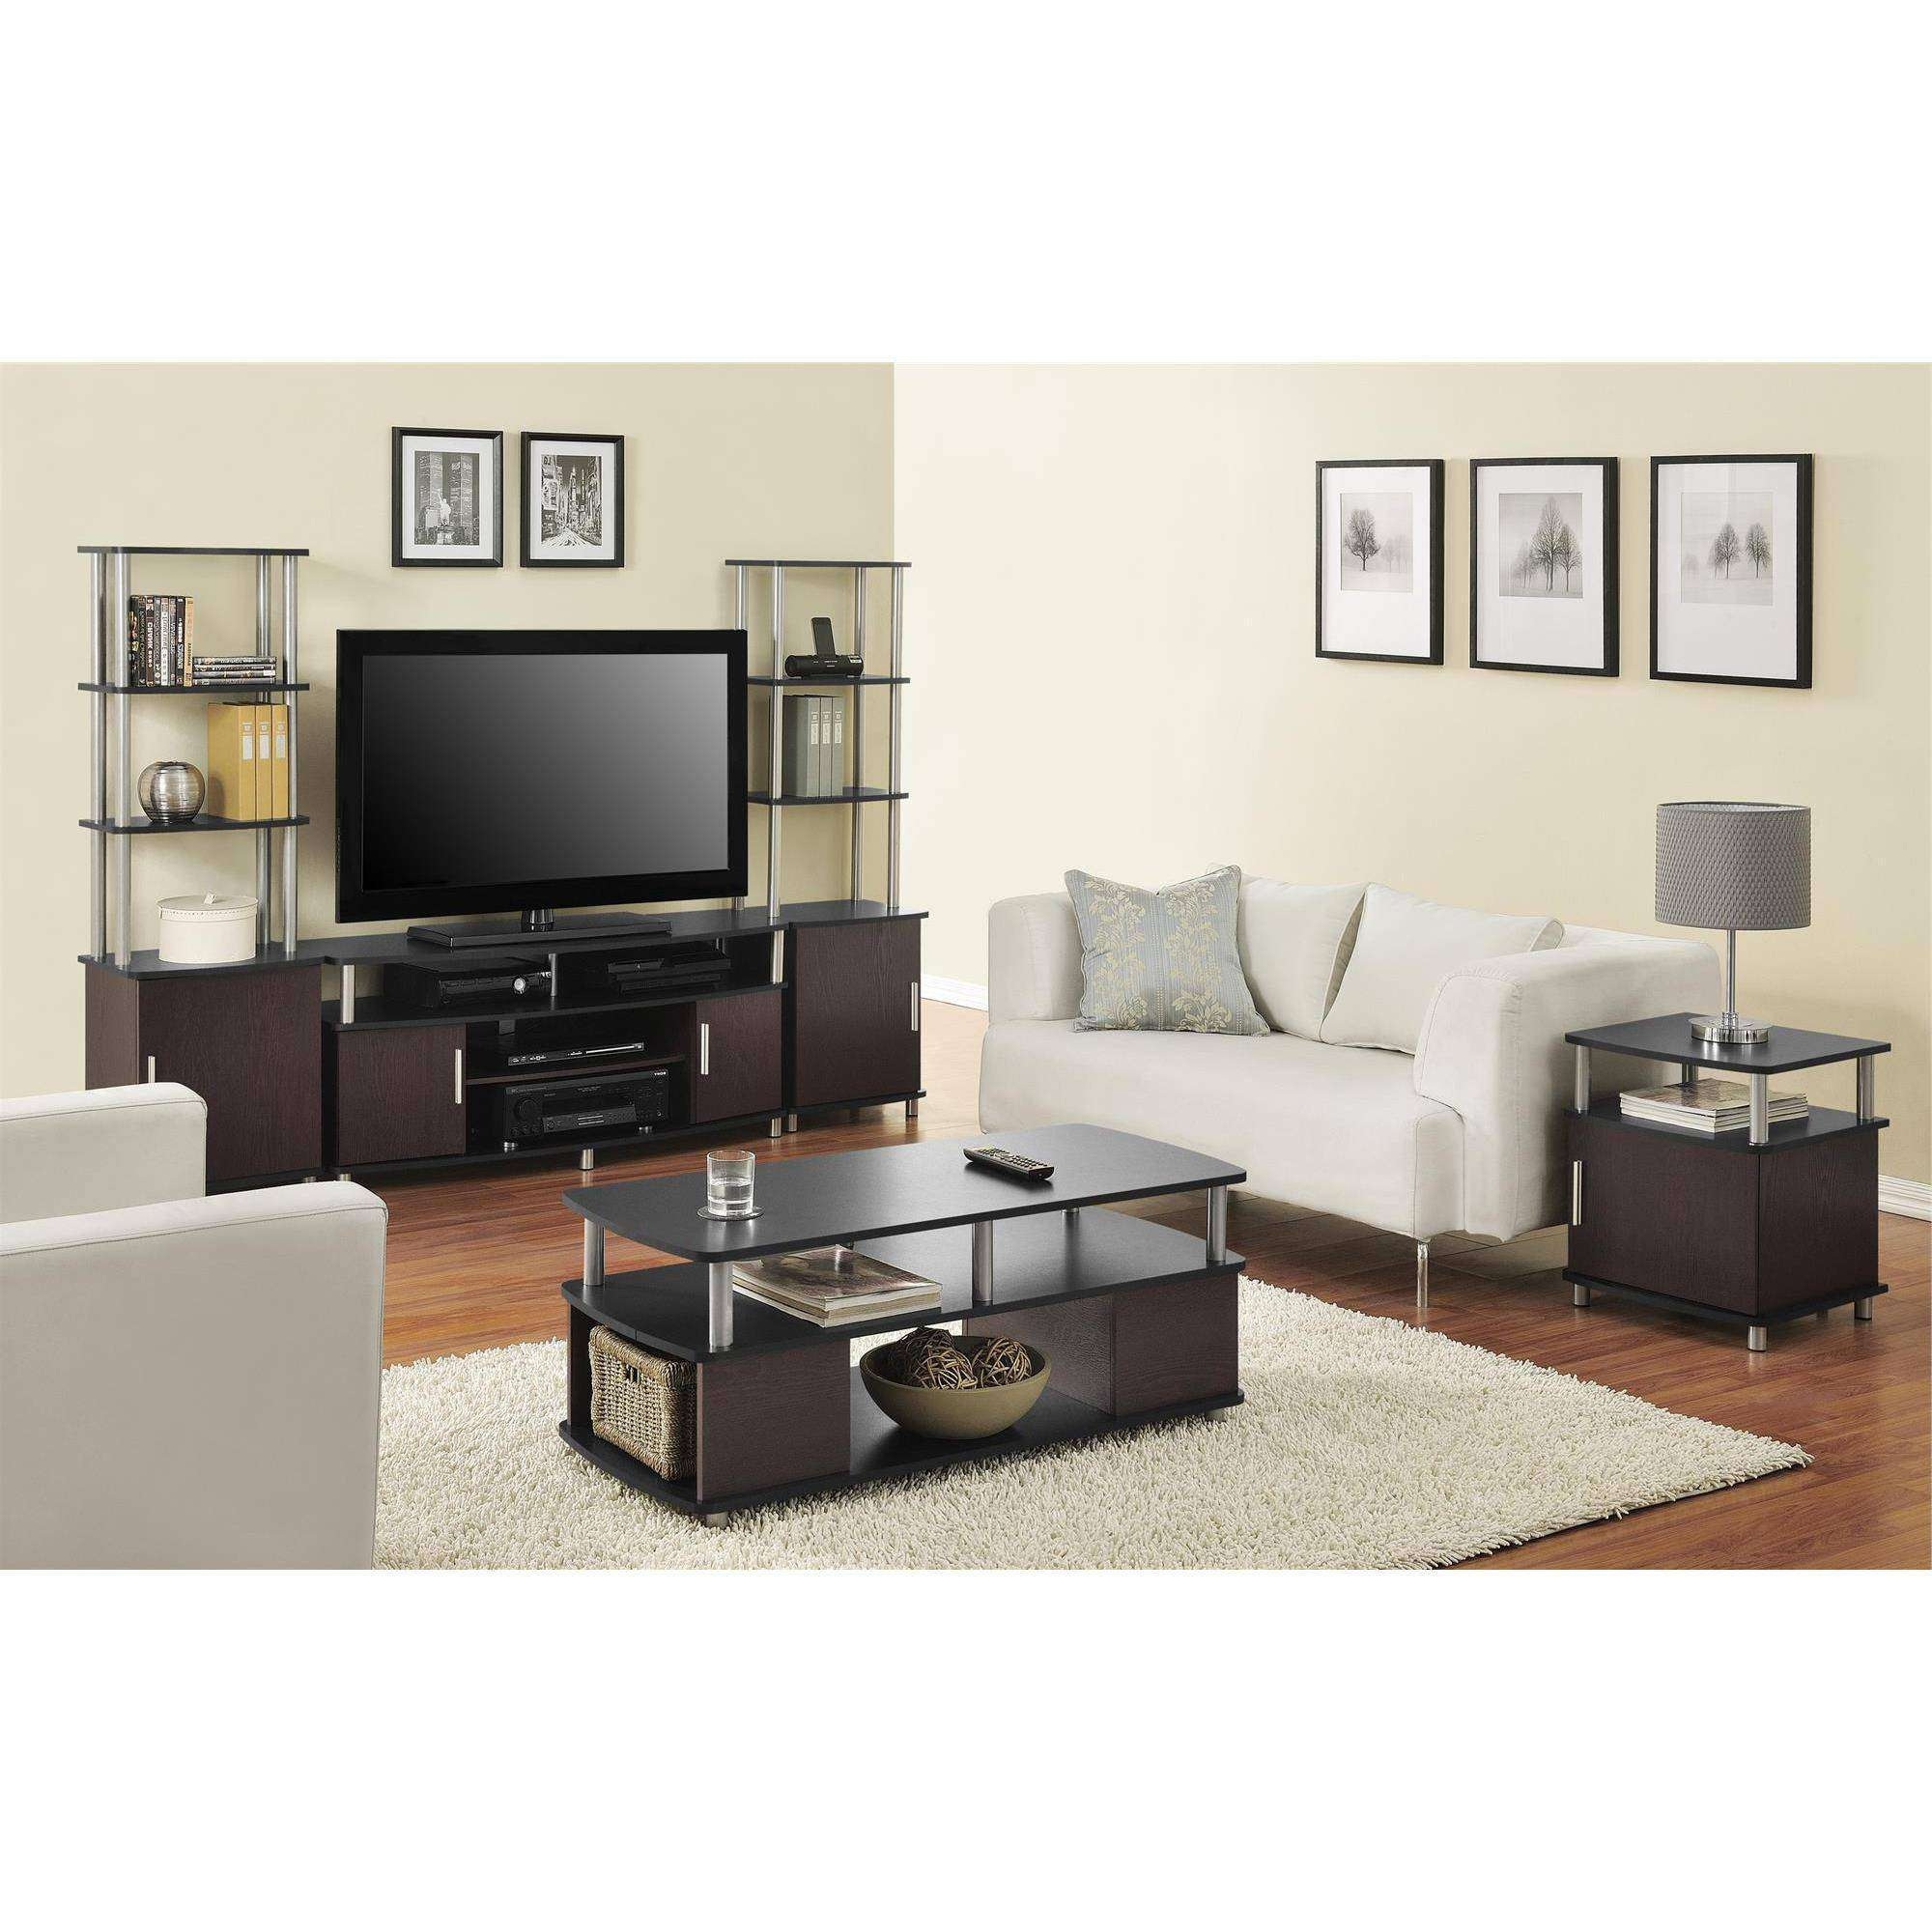 Tv : Memorable Coffee Table And Tv Stand Set Uk Perfect Coffee Within Coffee Tables And Tv Stands (View 13 of 20)